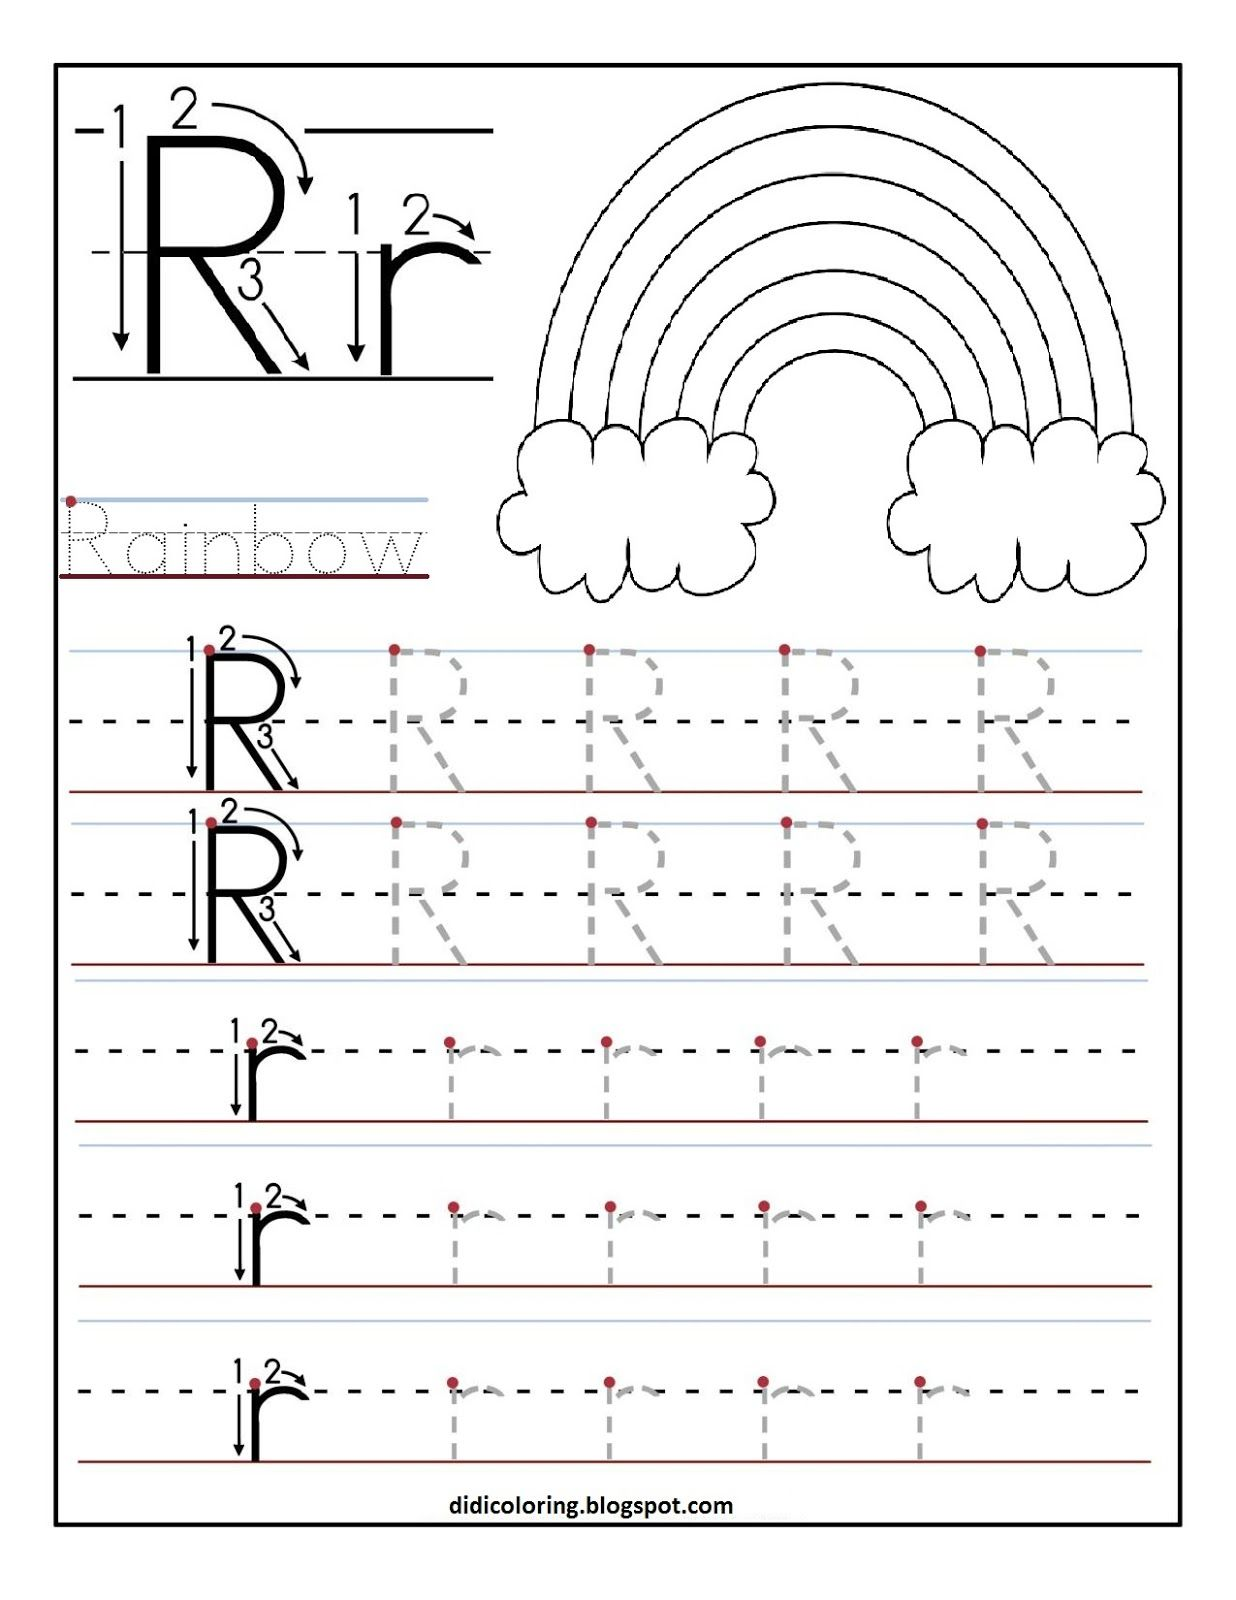 printable letter r tracing worksheets for 1 236 1 600 pixels letter r preschool. Black Bedroom Furniture Sets. Home Design Ideas